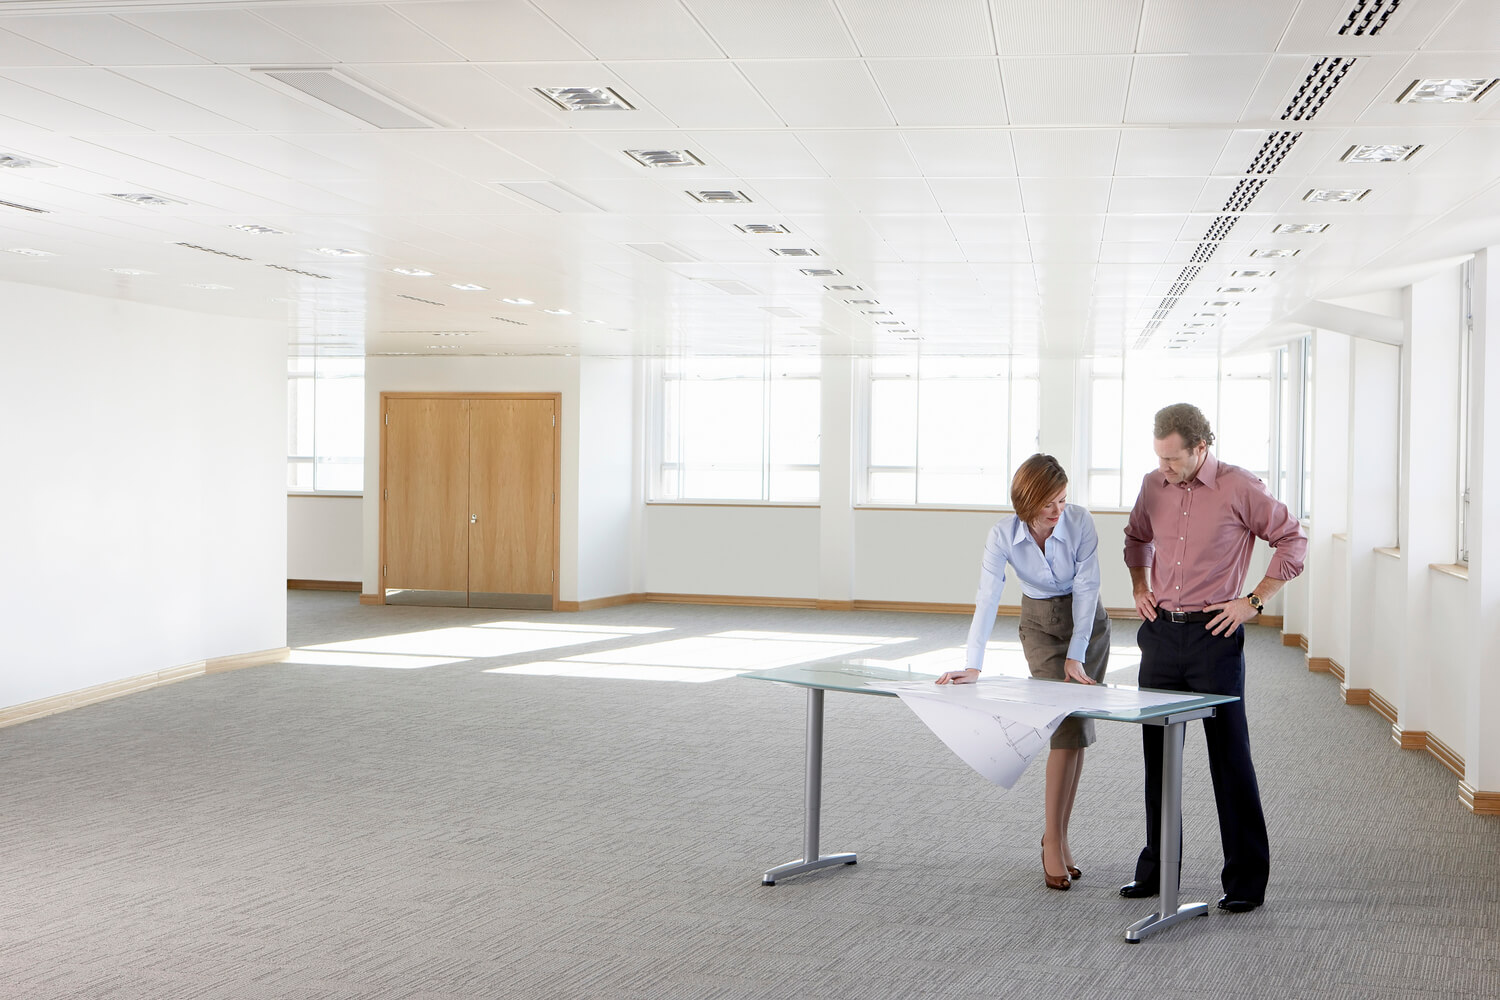 Do associate opinions matter in the design of law firm office space?